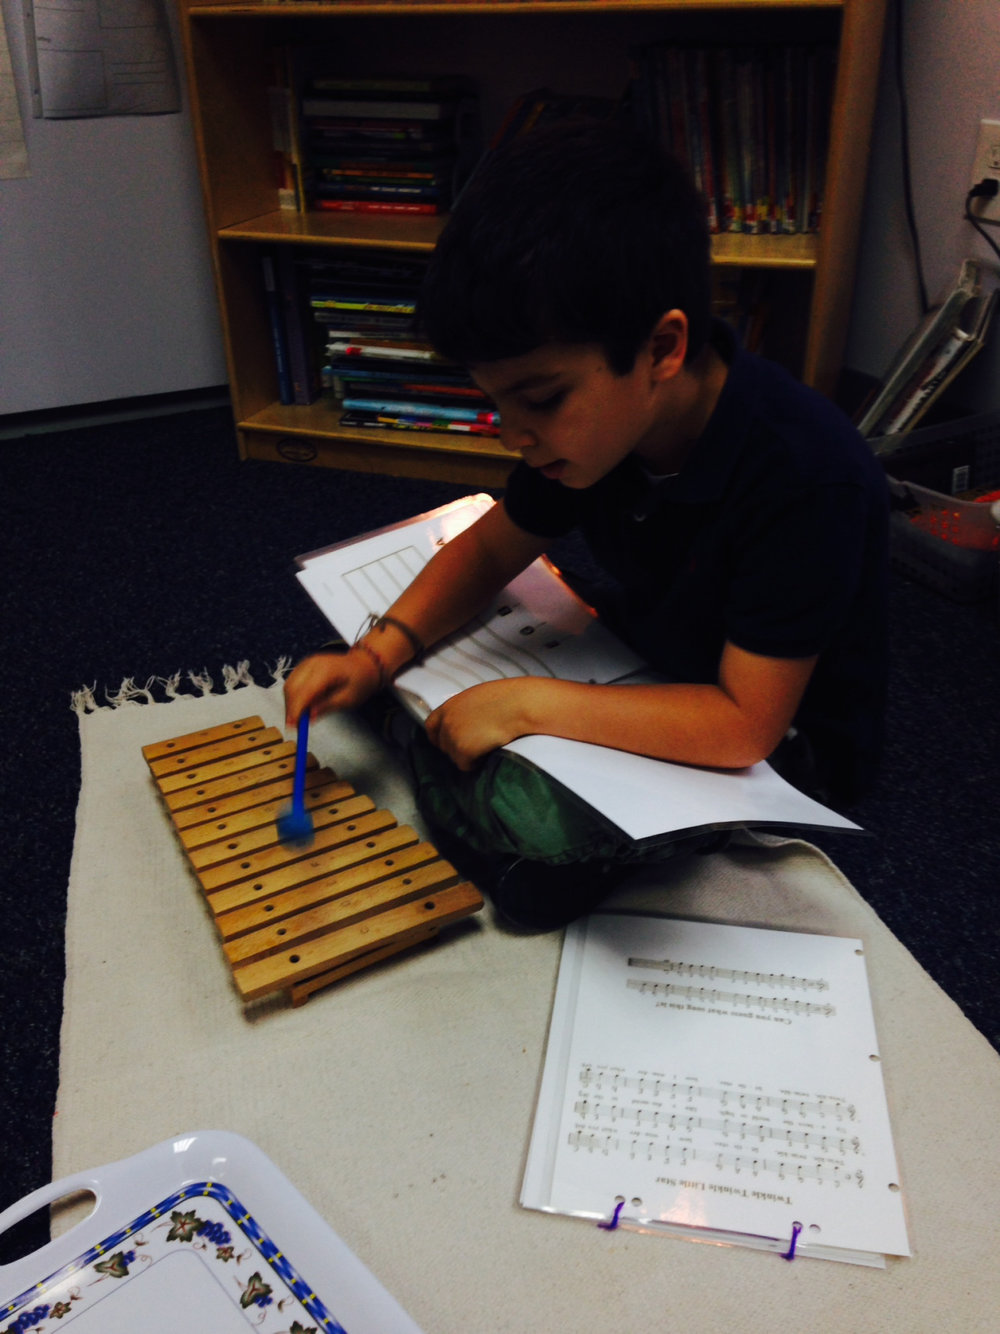 Courtesy of Music teacher Ms. Cristina, the Lower Elementary West students had the opportunity to work with a xylophone and sheet music to play and practice music.